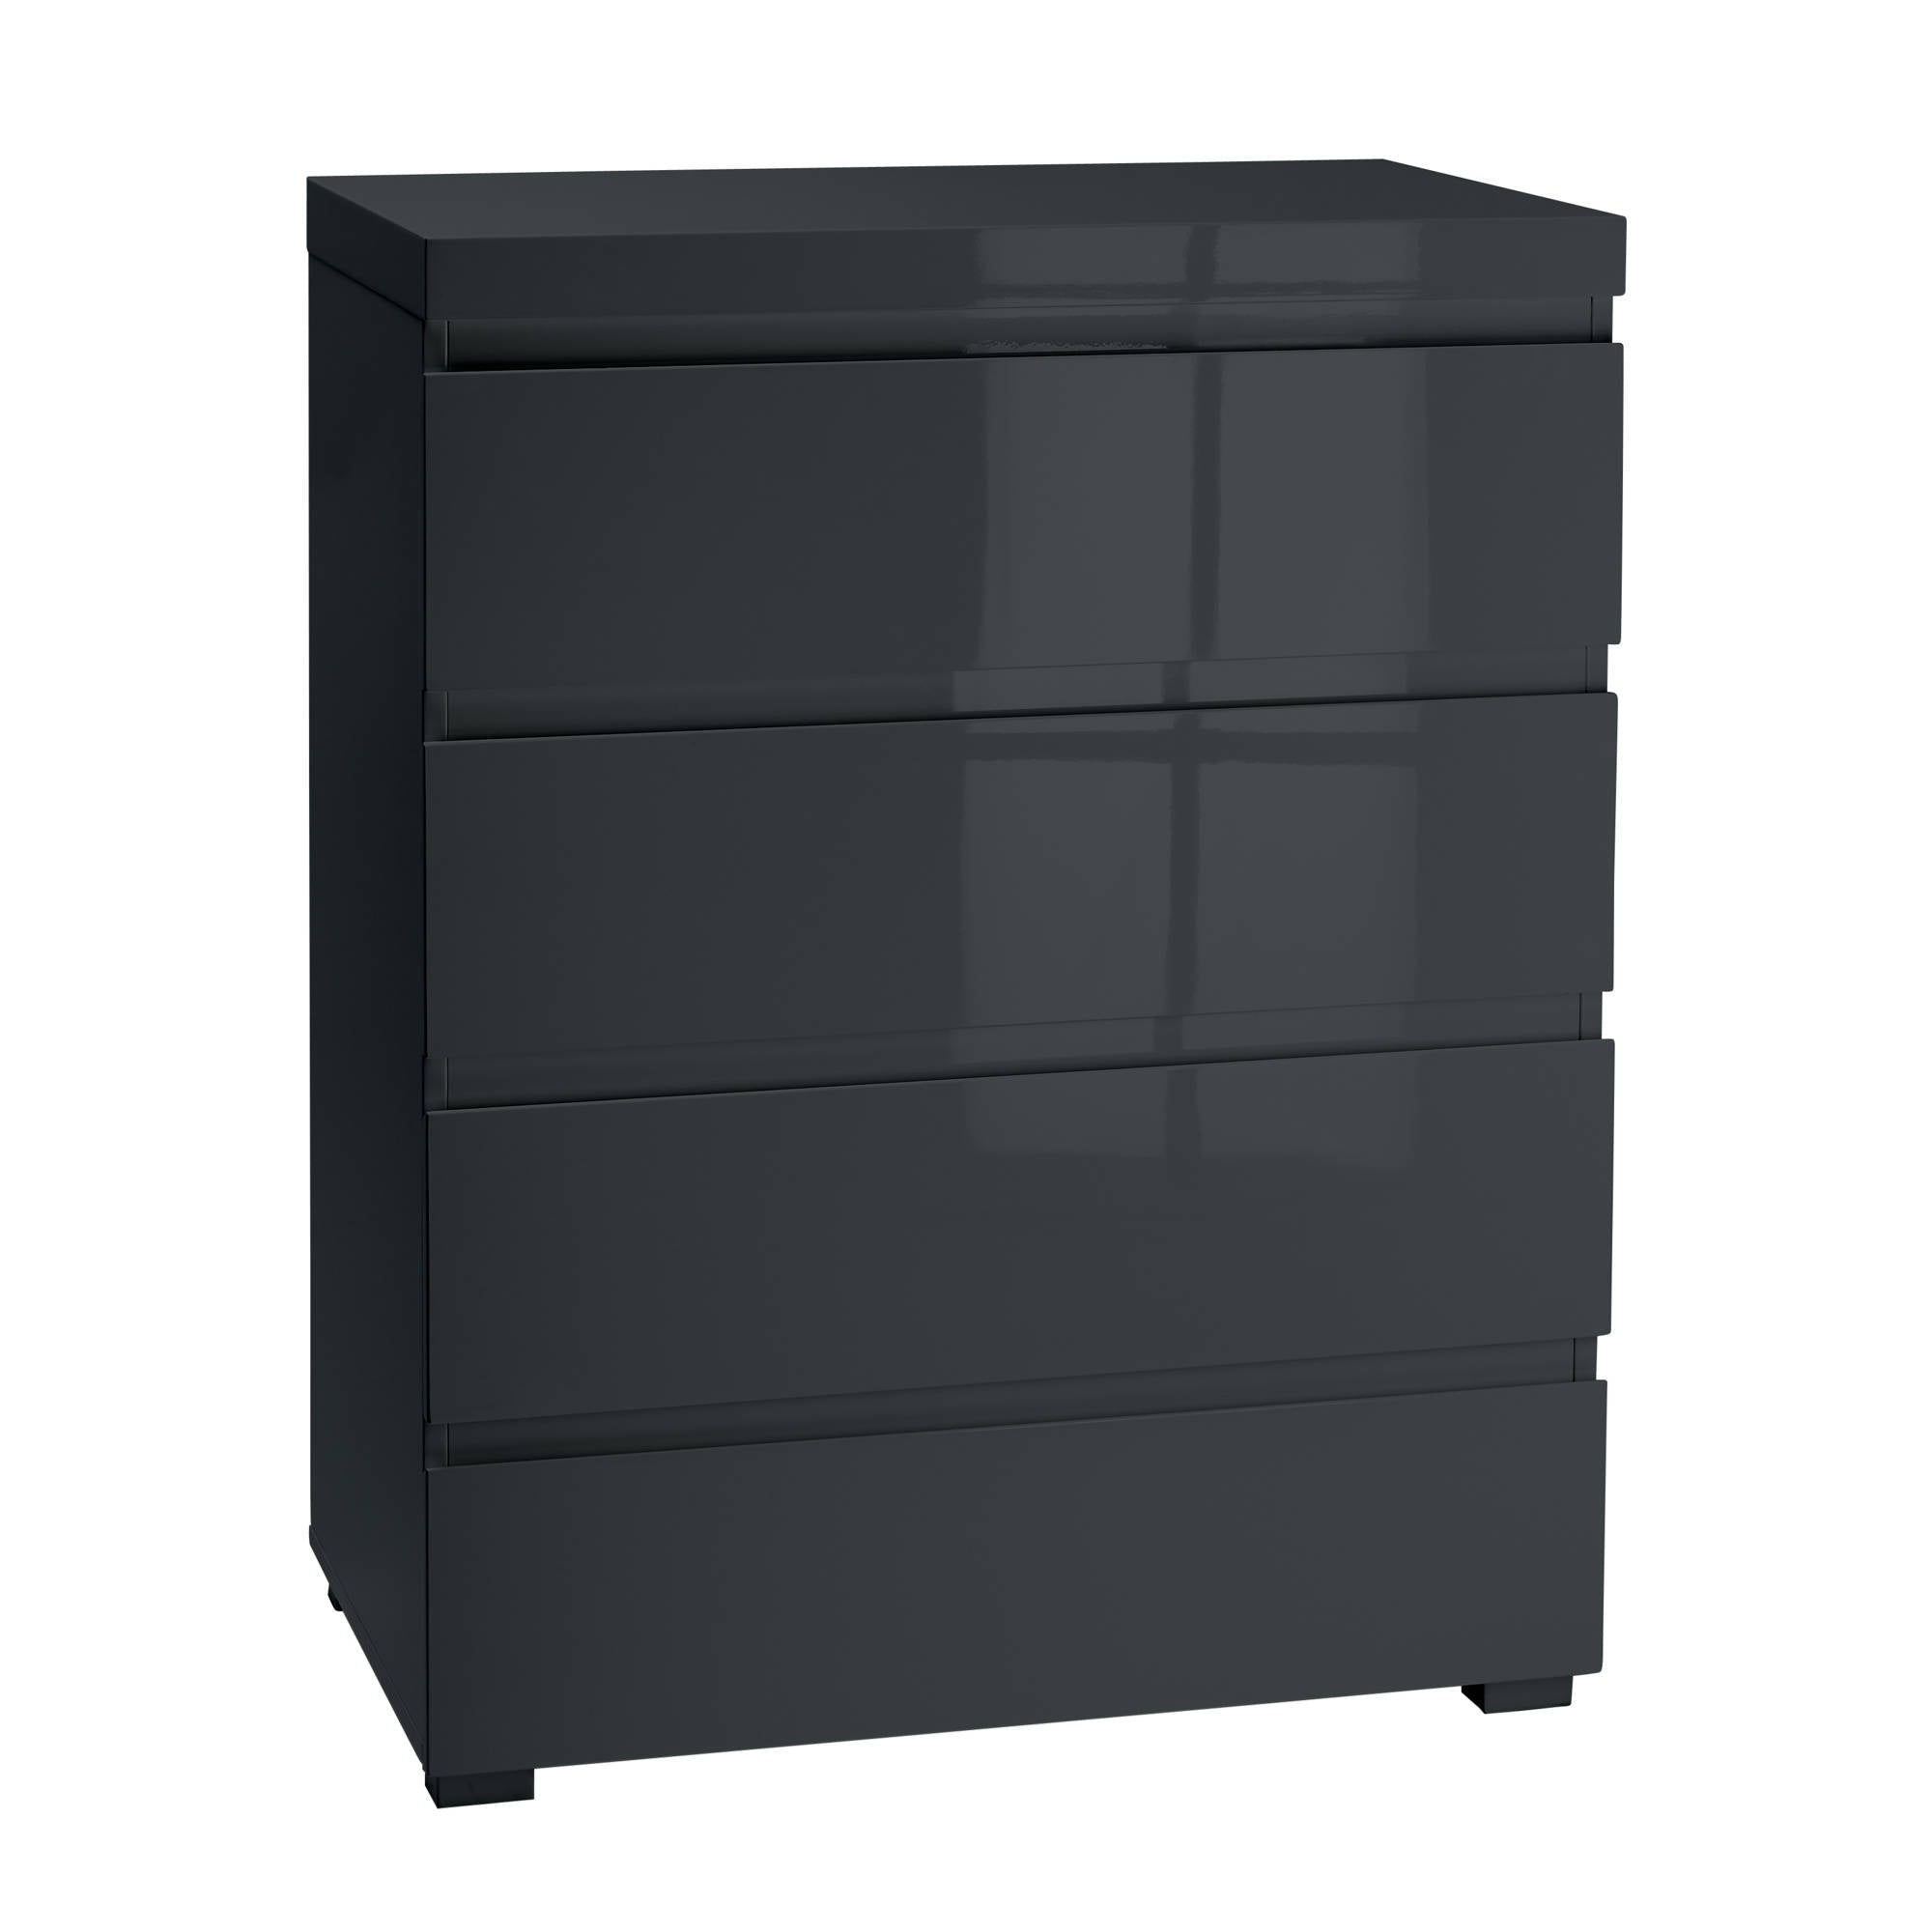 Cuba 4 Drawer Chest in Charcoal - Ezzo